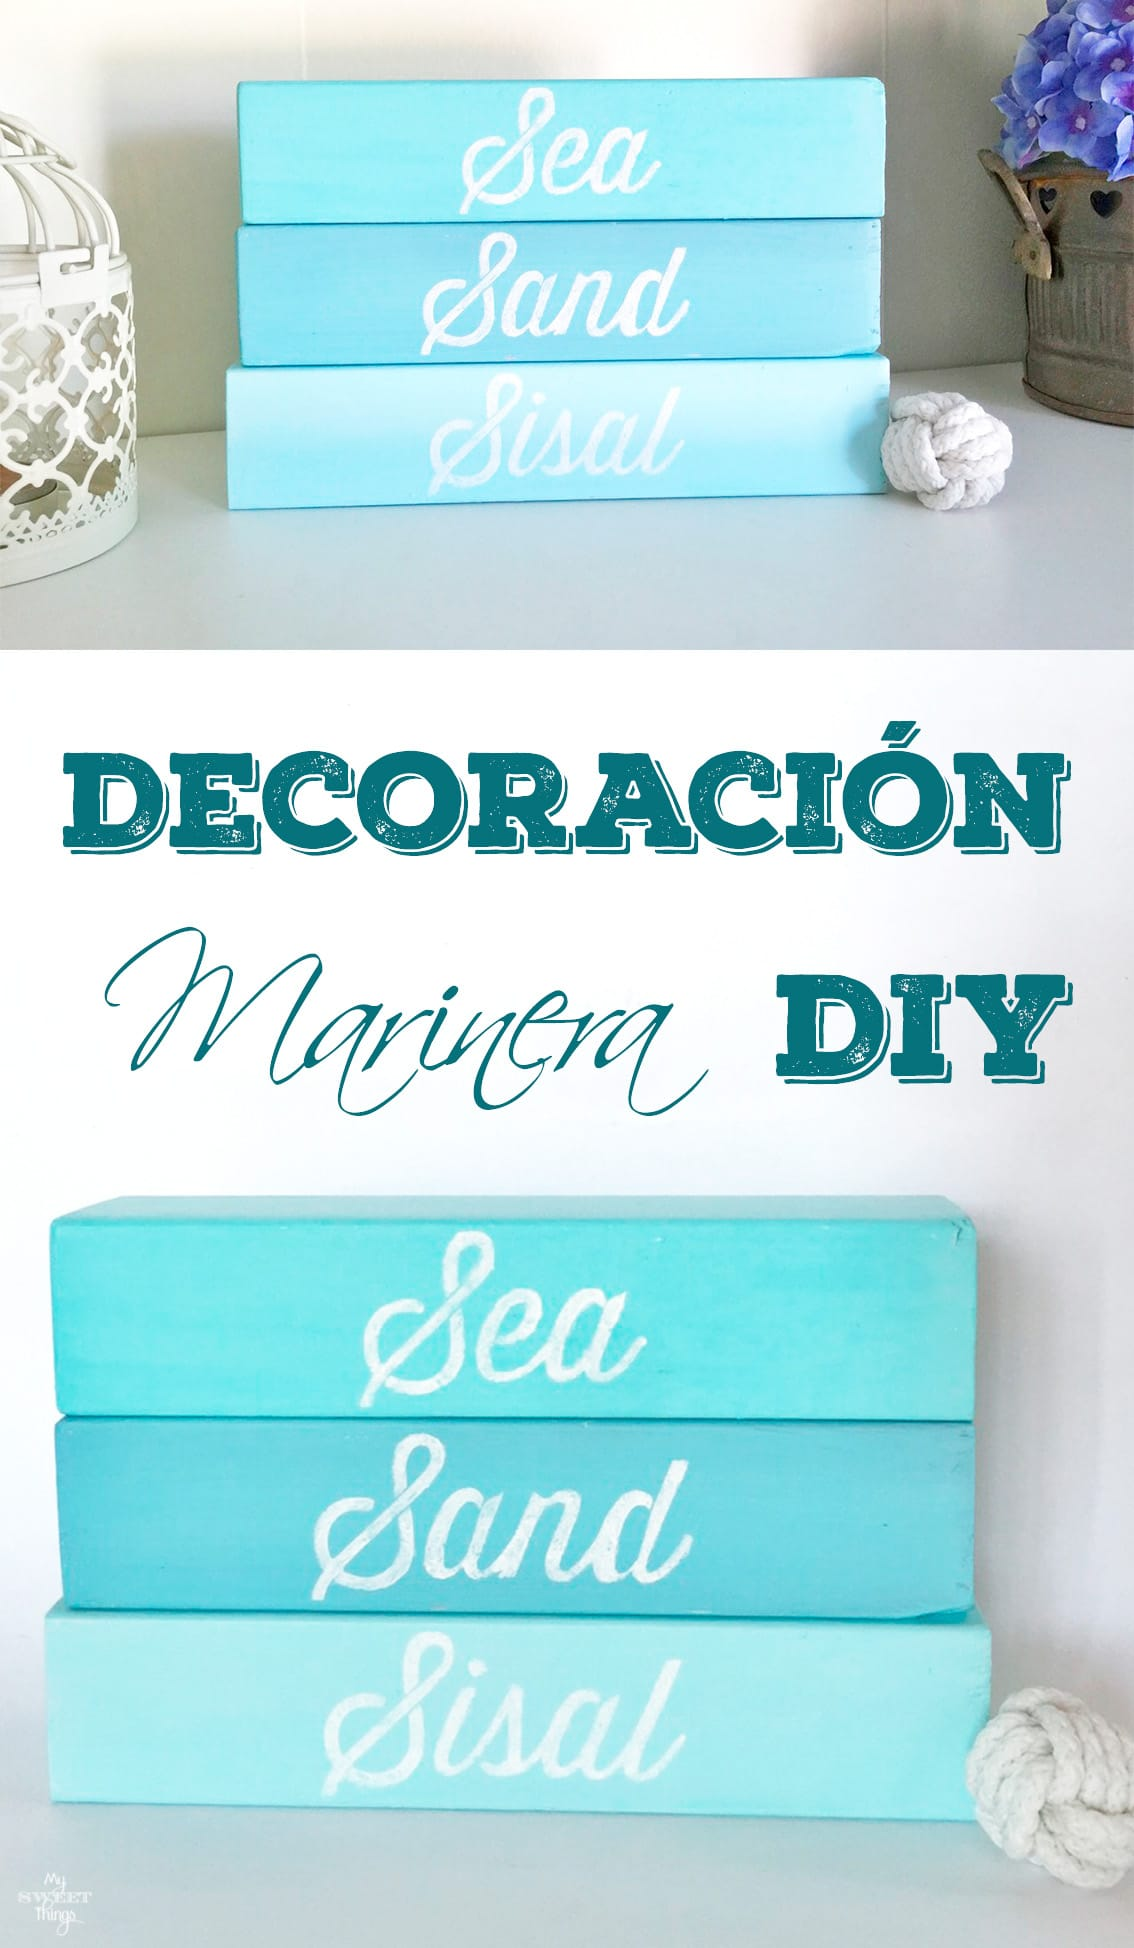 Decoración marinera DIY con madera y pintura  ·  My Sweet Things